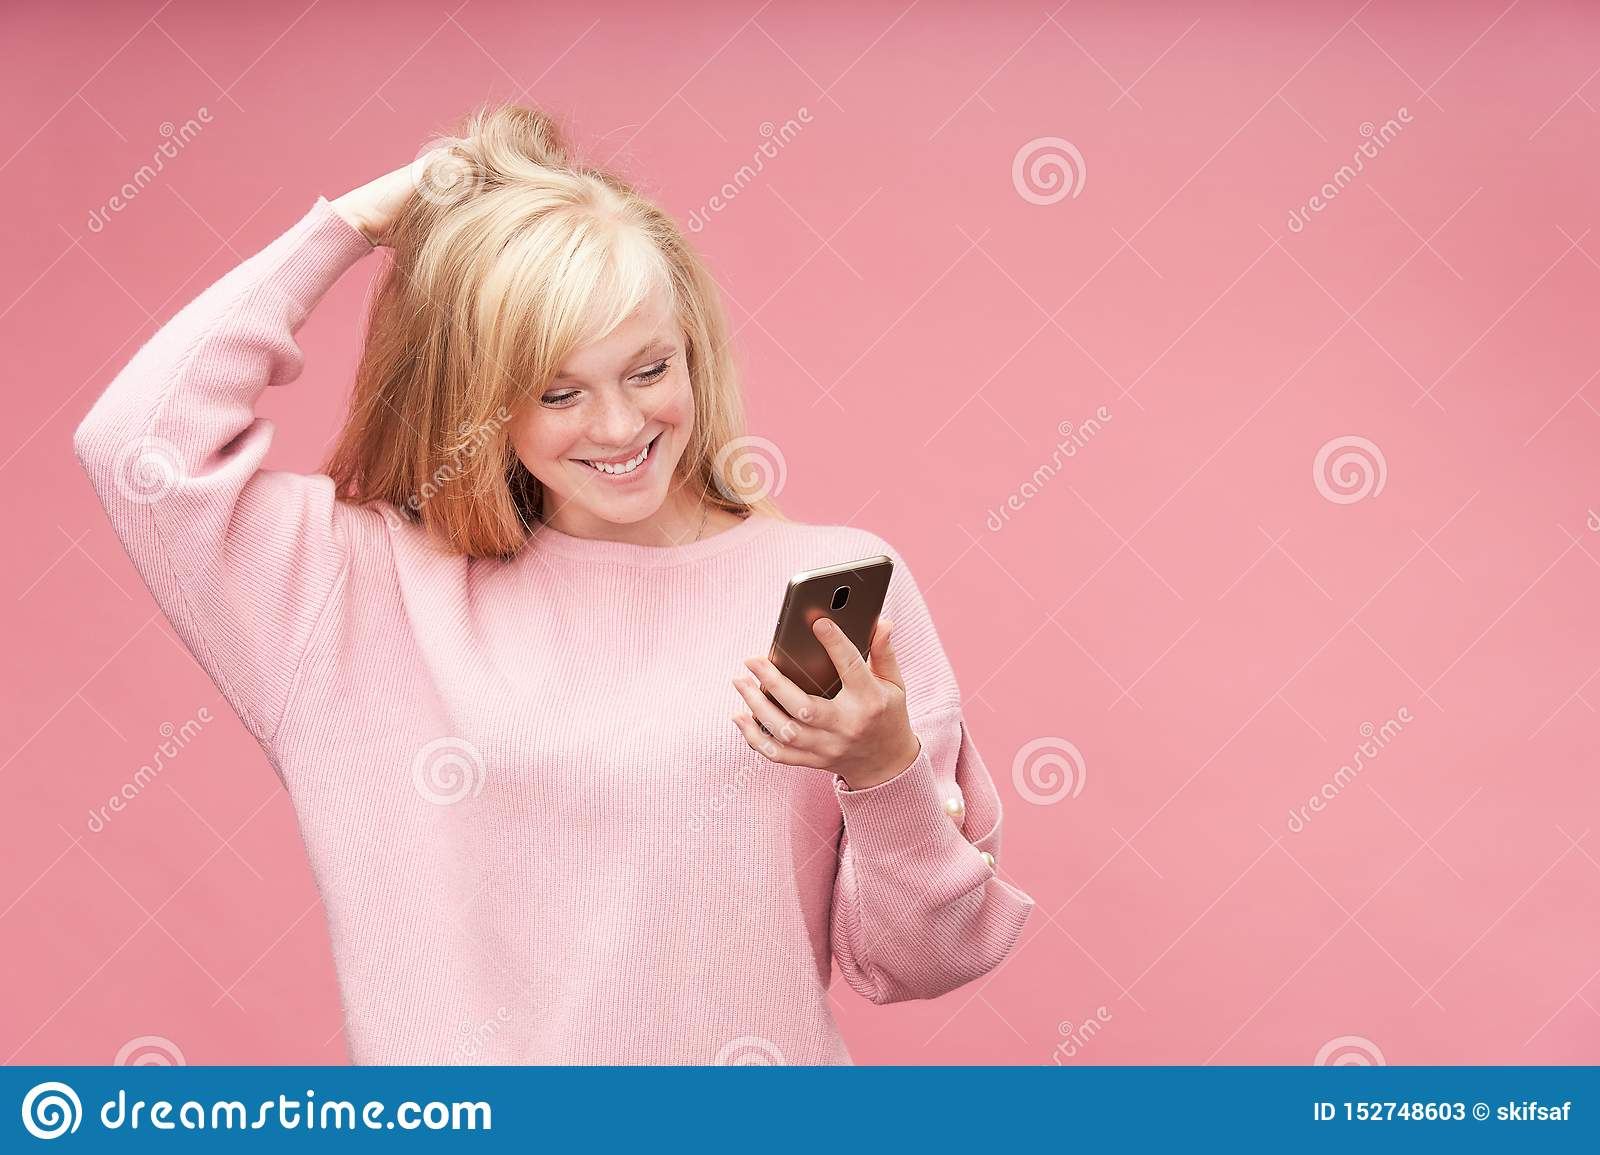 Emotional girl looking at the phone. Young beautiful blonde looks admiringly at the smartphone holding his hand to his head. happy